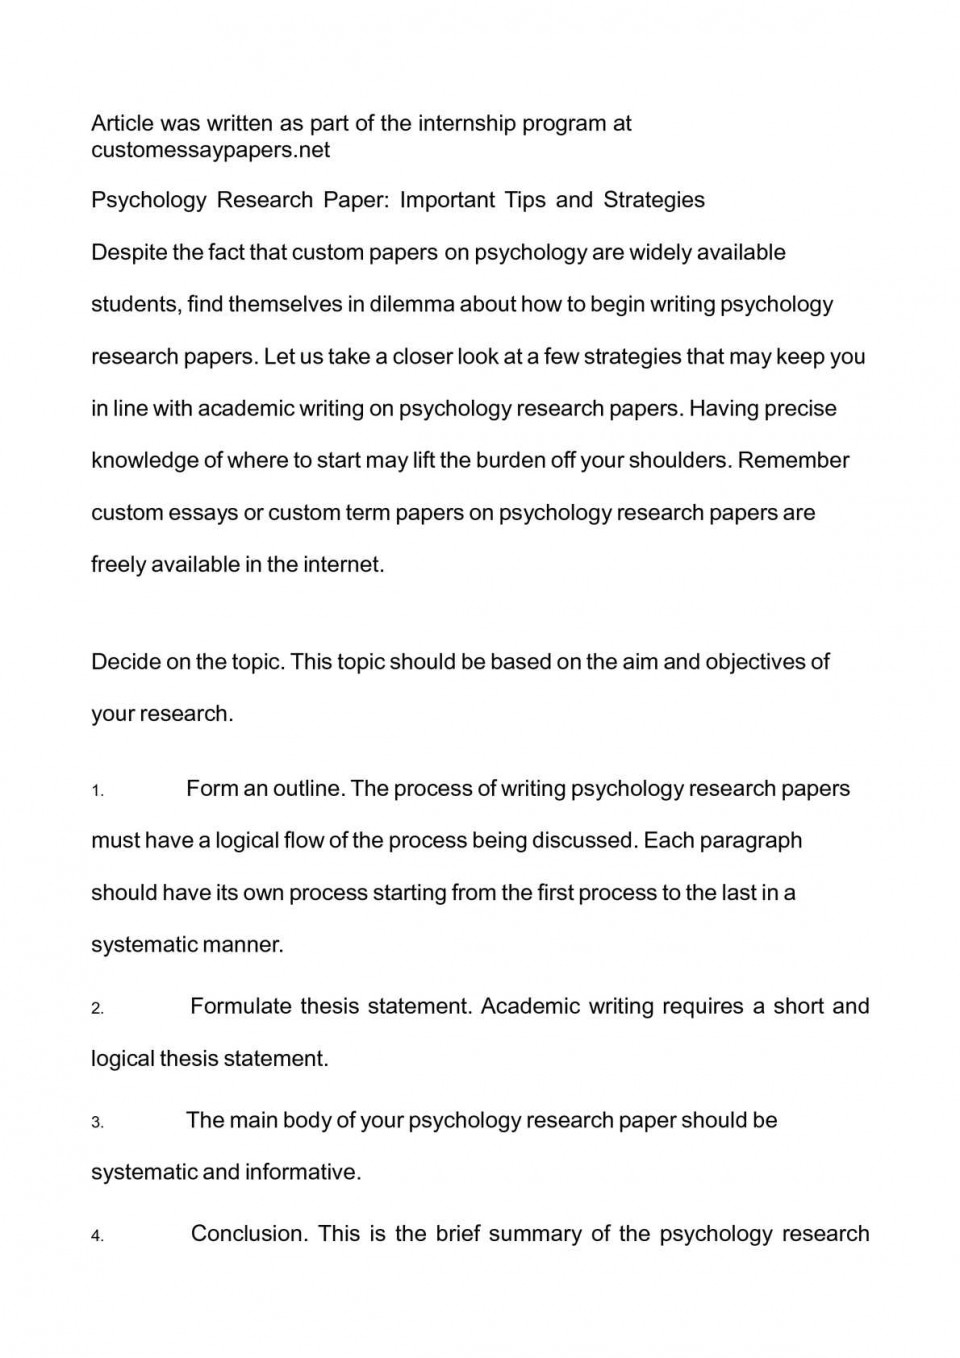 019 Psychology Research Paper Topics Striking For High School Students Reddit 960